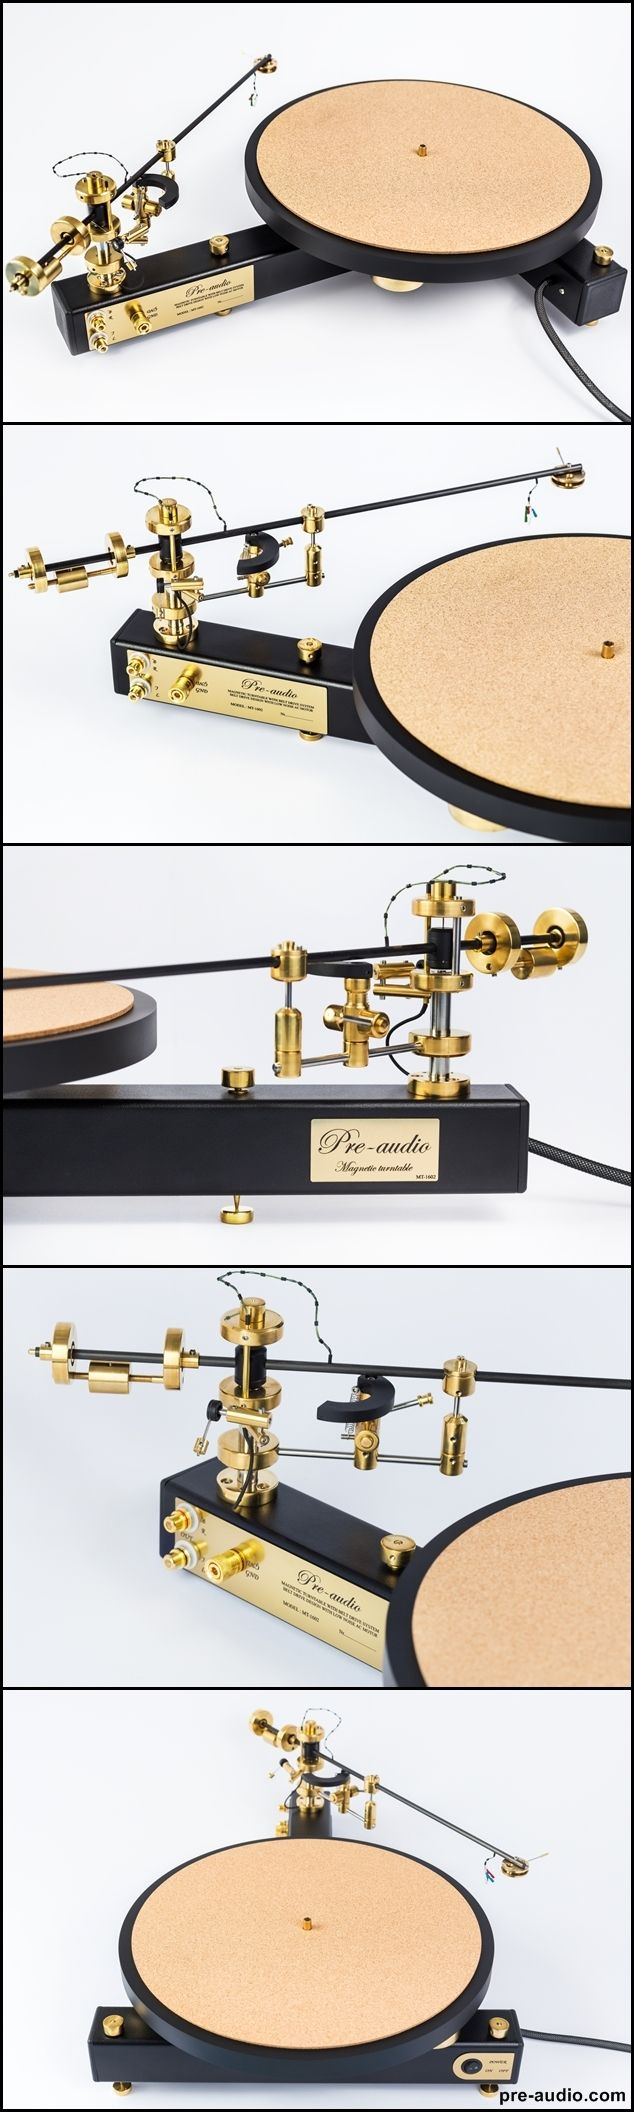 Turntable MT-1602, classic turntable with magnetic suspension of the tonearm